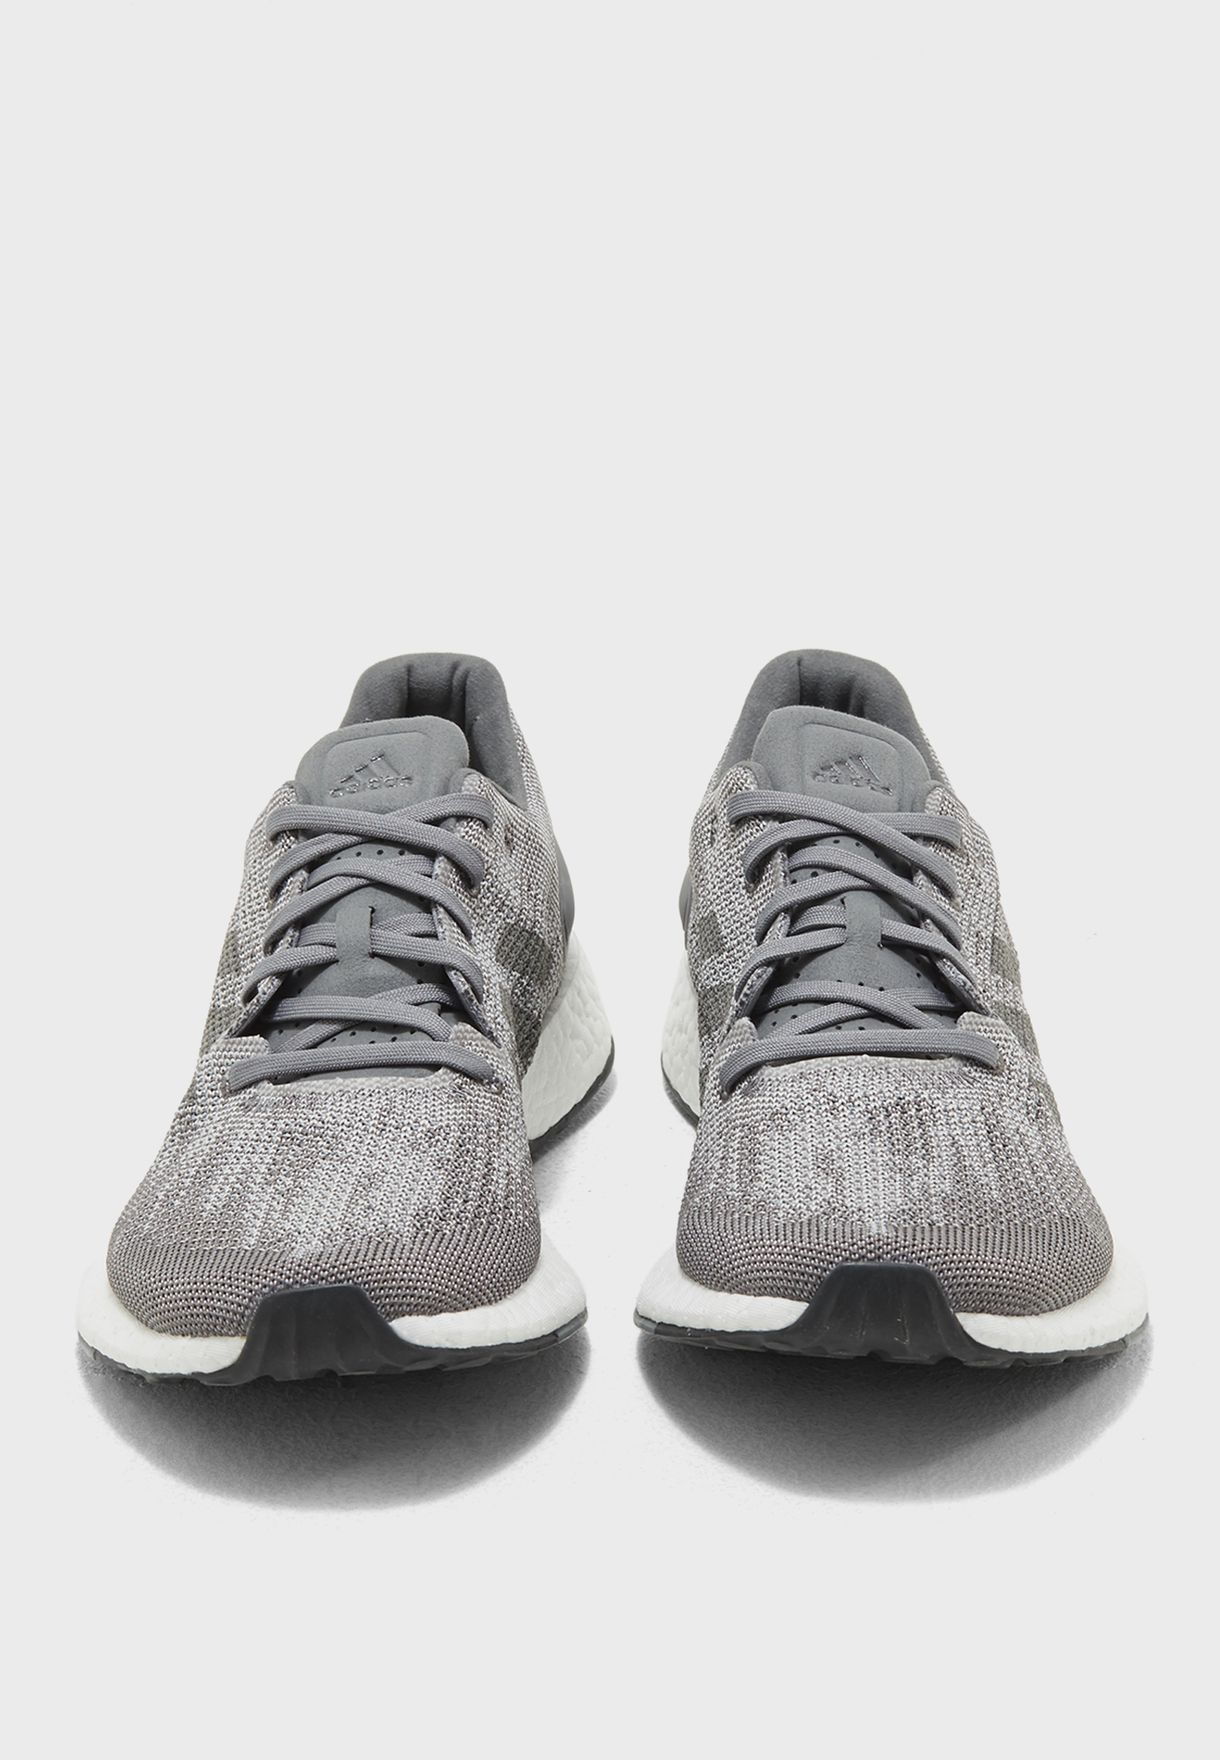 quality design f439c d9f3f Shop adidas grey Pureboost DPR BB6290 for Men in Qatar - AD4